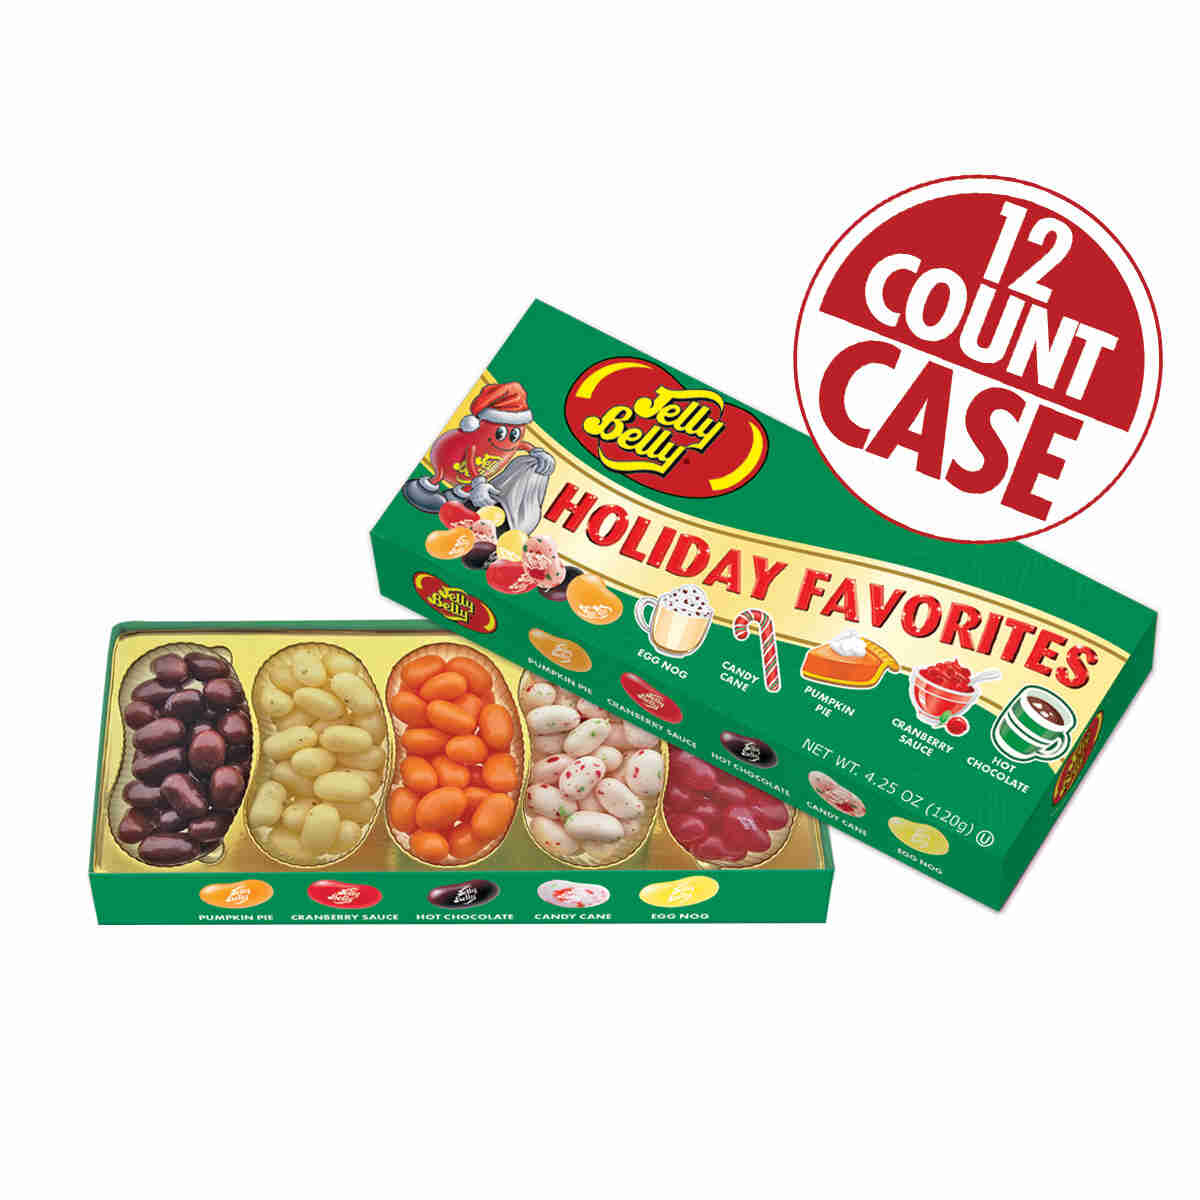 Holiday Favorites Jelly Bean 4.25 oz Gift Box - 12 Count Case